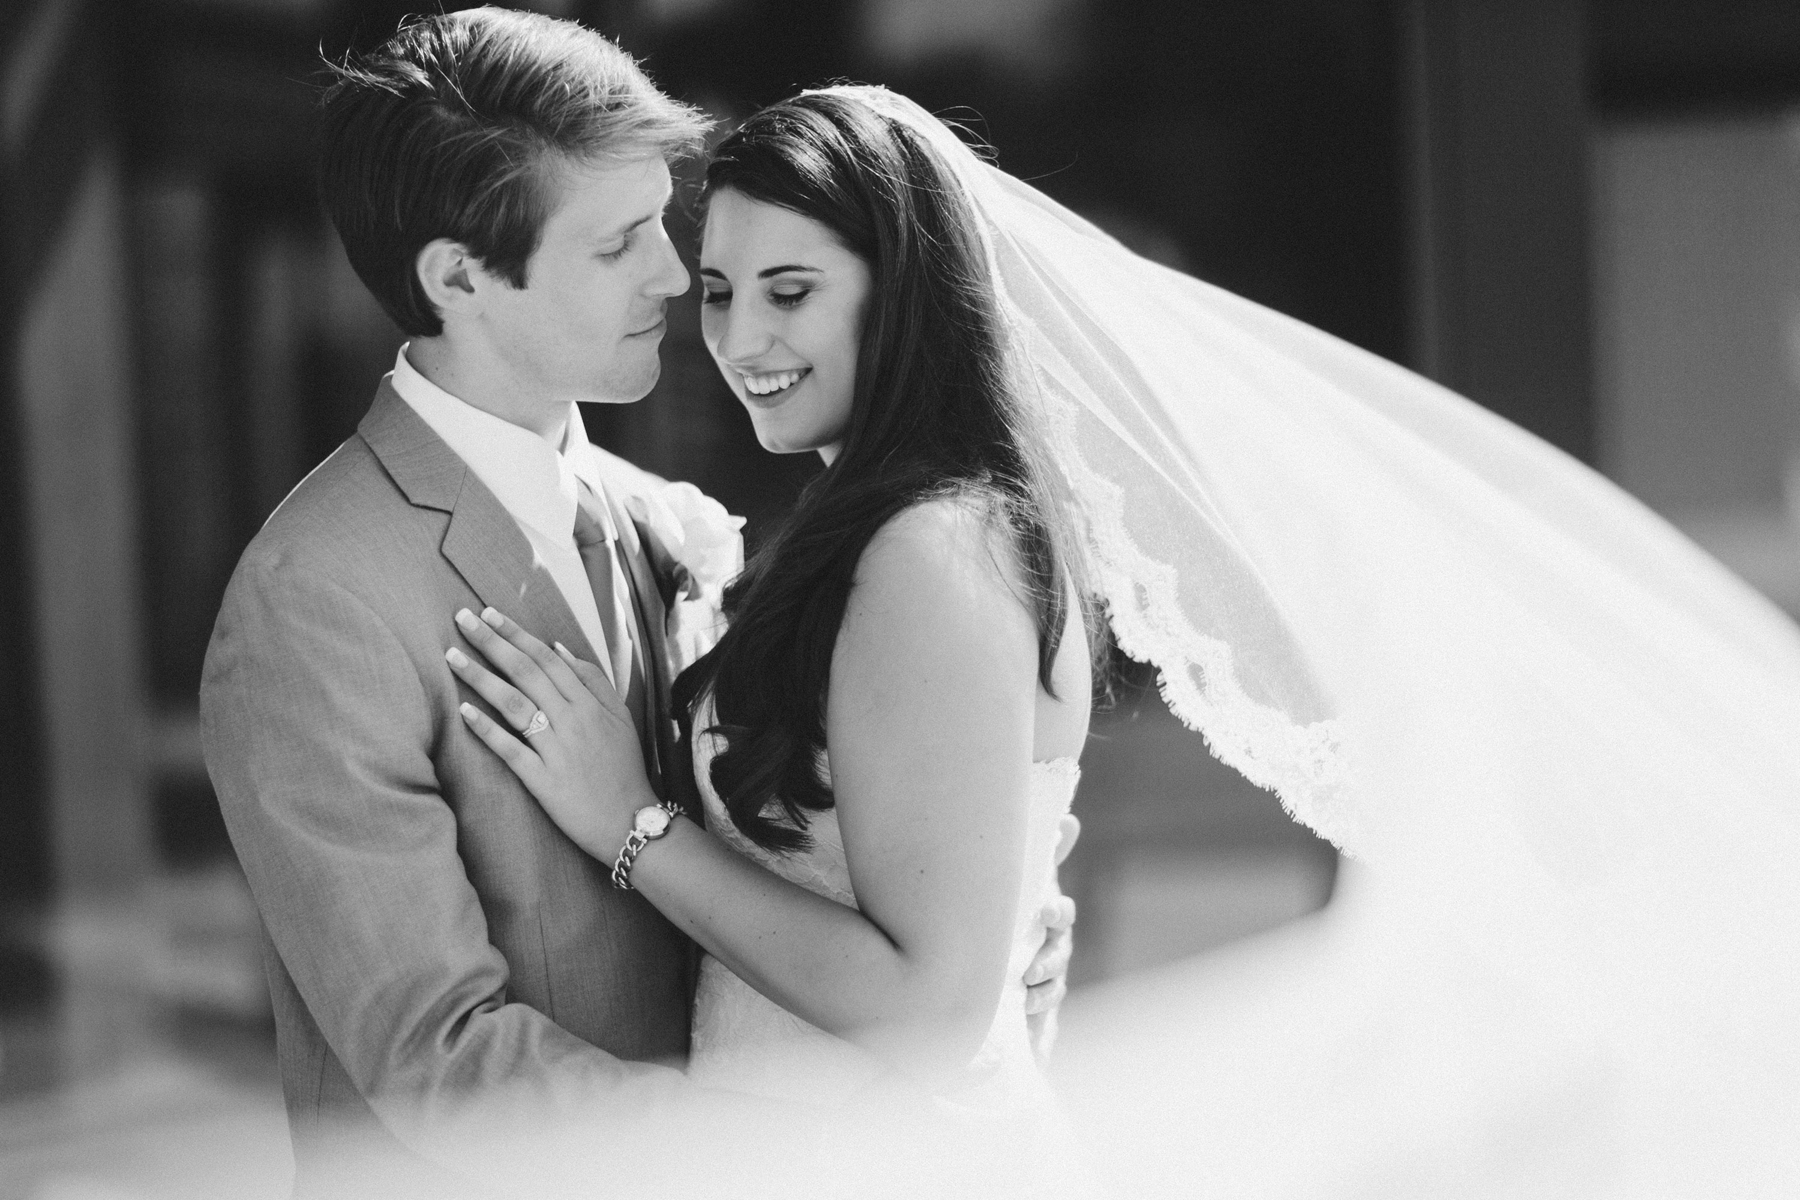 daytoremember.net | Daniel Colvin Photography | Crystal Ballroom Weddings | A Day To Remember Houston Luxury Wedding Planning and Design